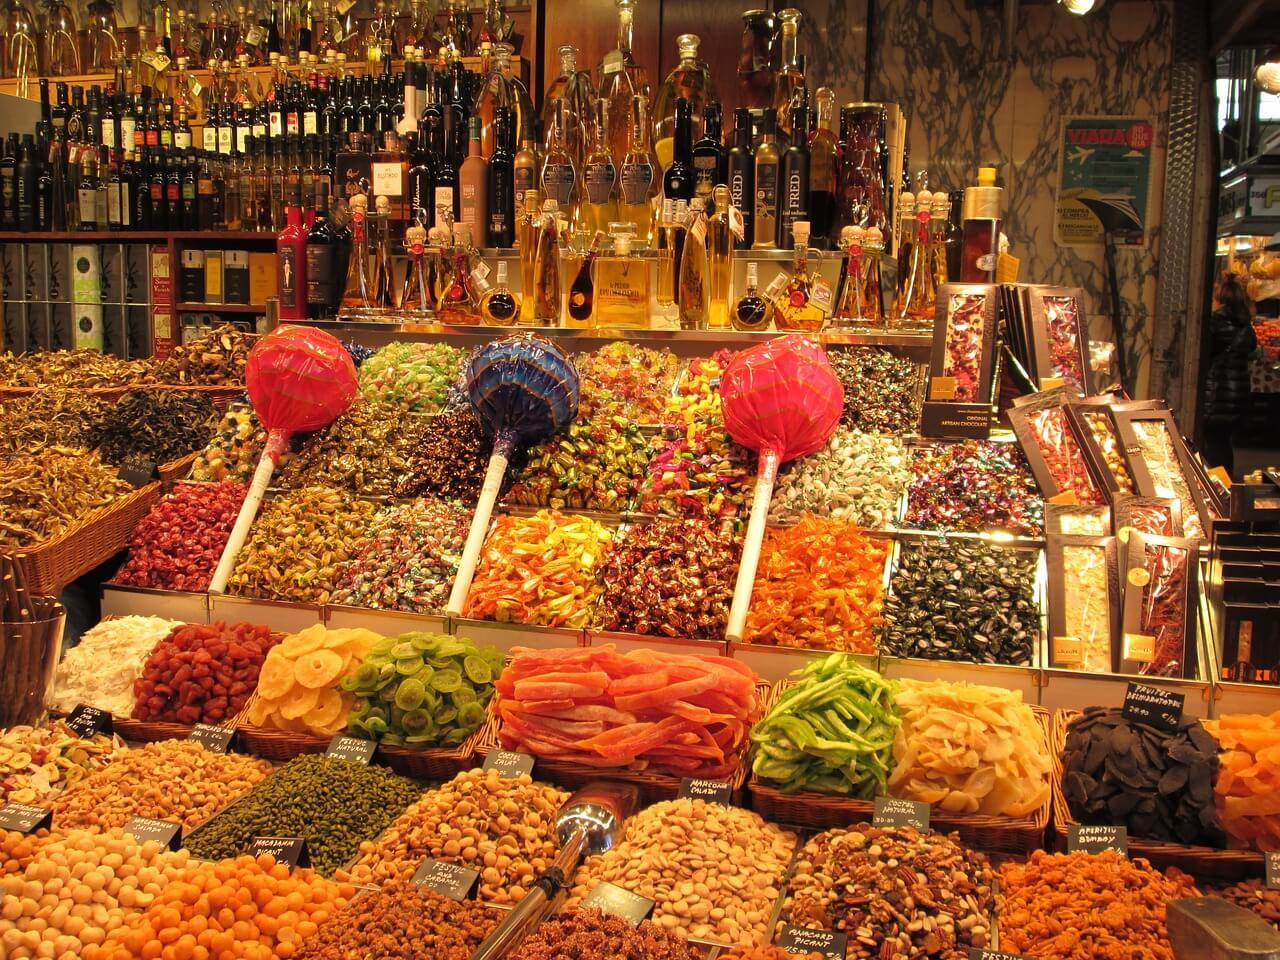 Markets - Things to do in Barrio Gotico, Barcelona